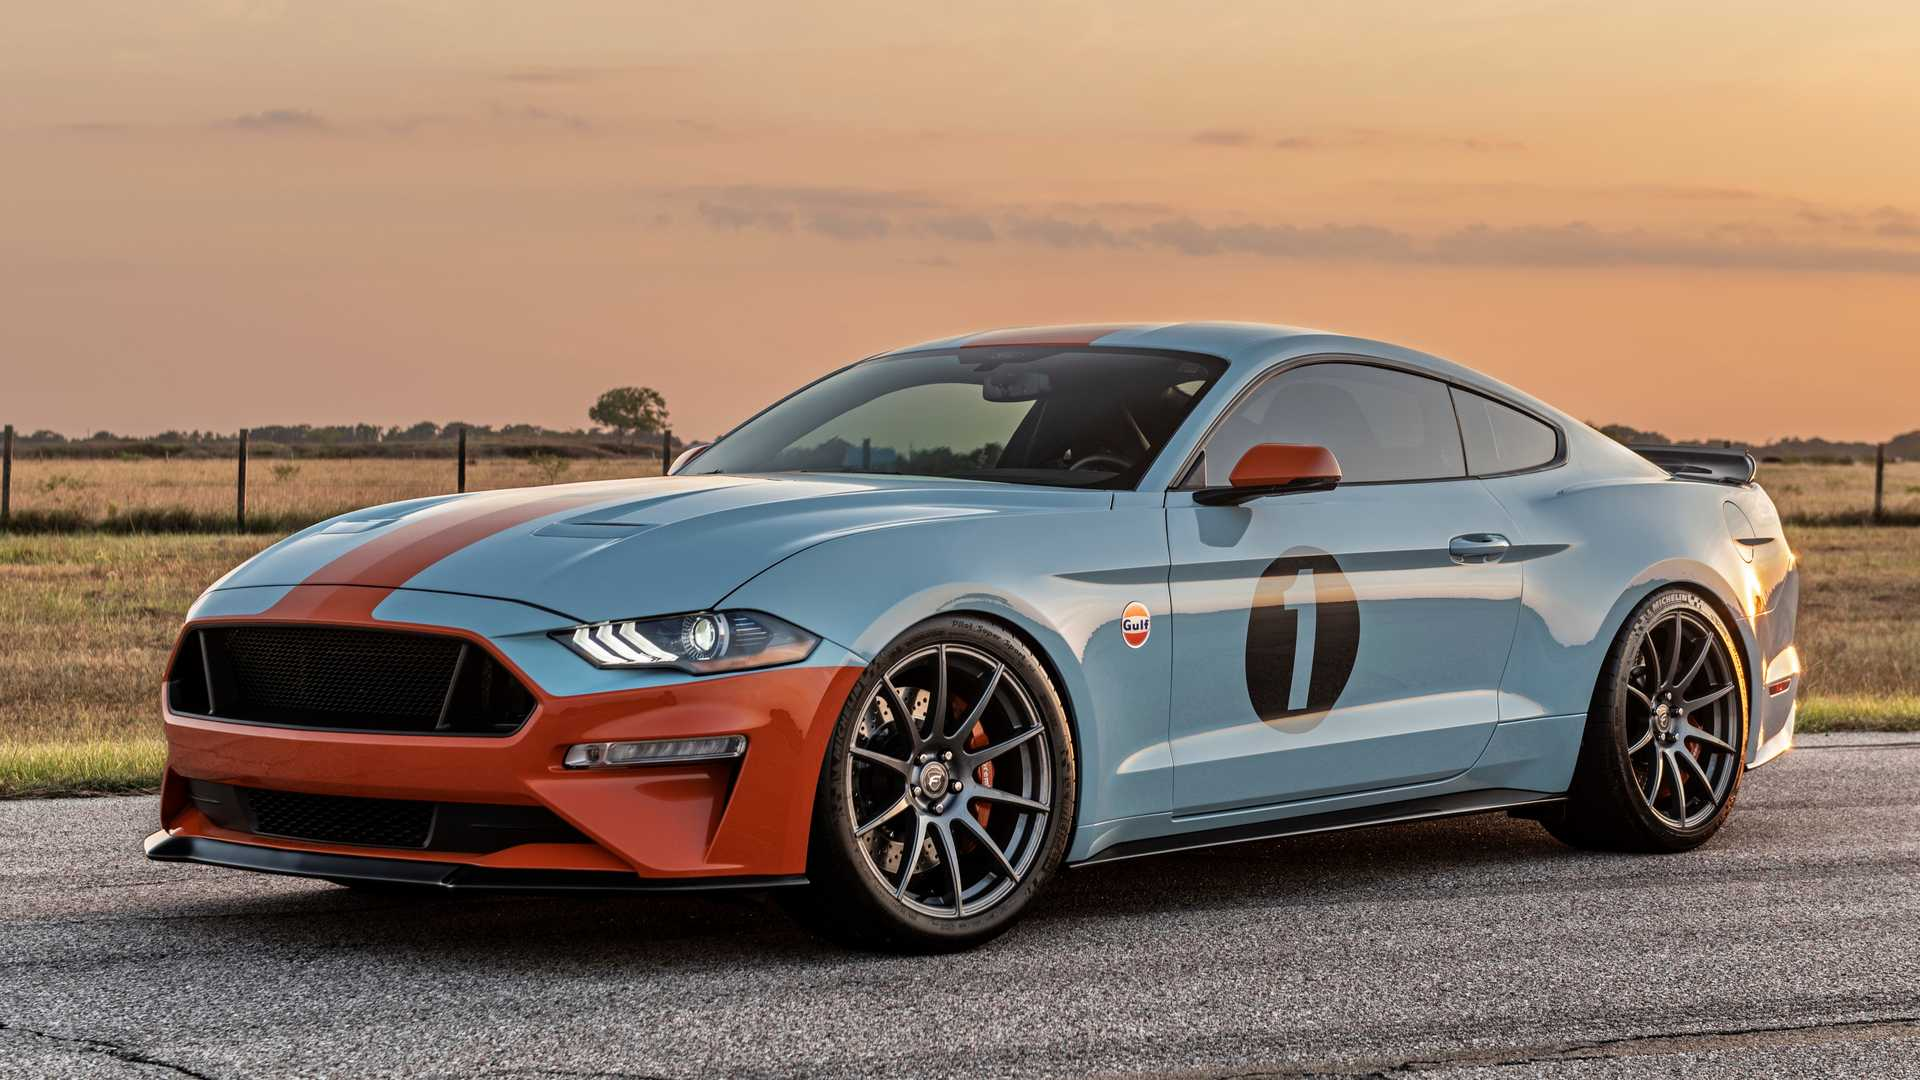 U.S. car company Brown Lee Performance has launched a special edition of the Ford Mustang in its fabled Le Mans Gulf livery. The series is dedicated to the racing history of the Ford marque.